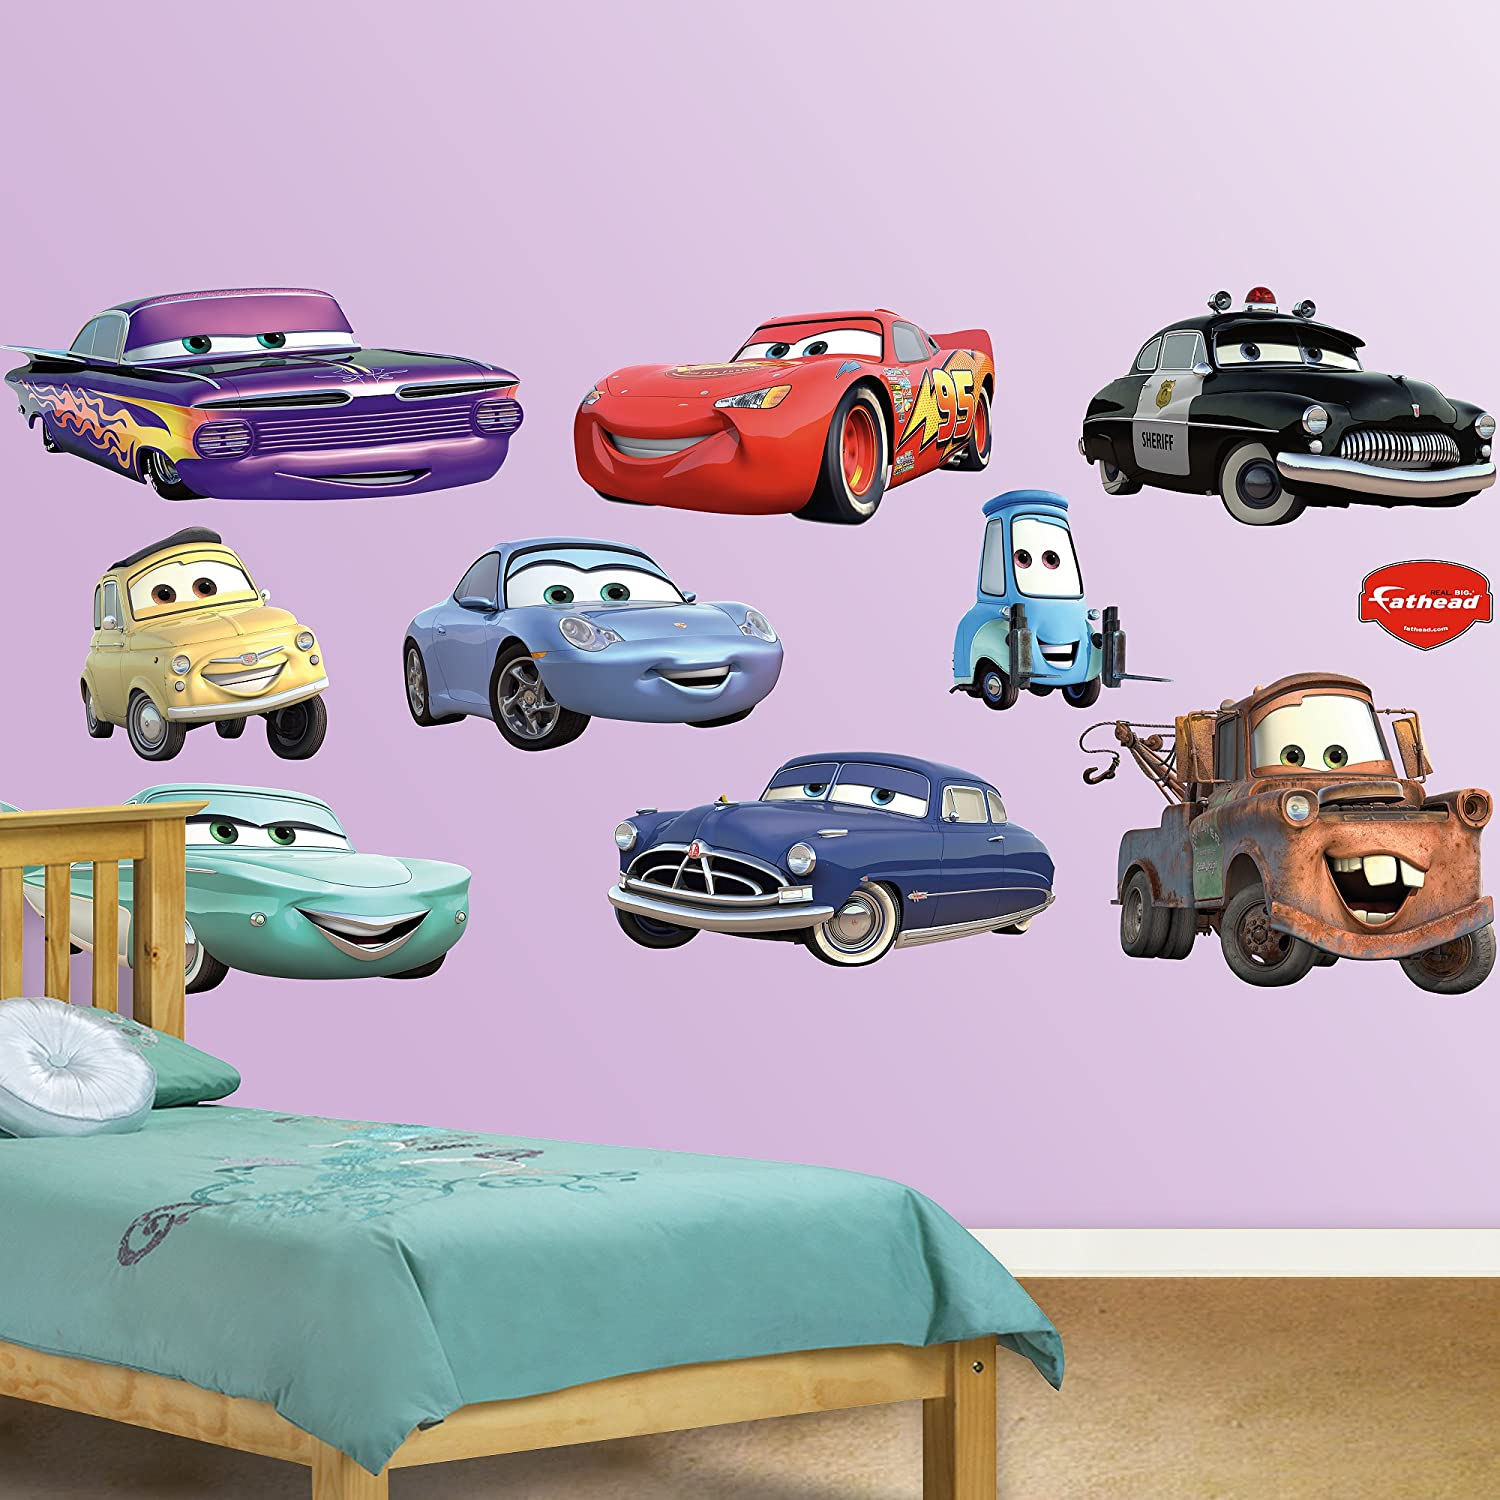 Delicieux Amazon.com: FATHEAD Disney/Pixar Cars Collection Graphic Wall Décor: Home U0026  Kitchen